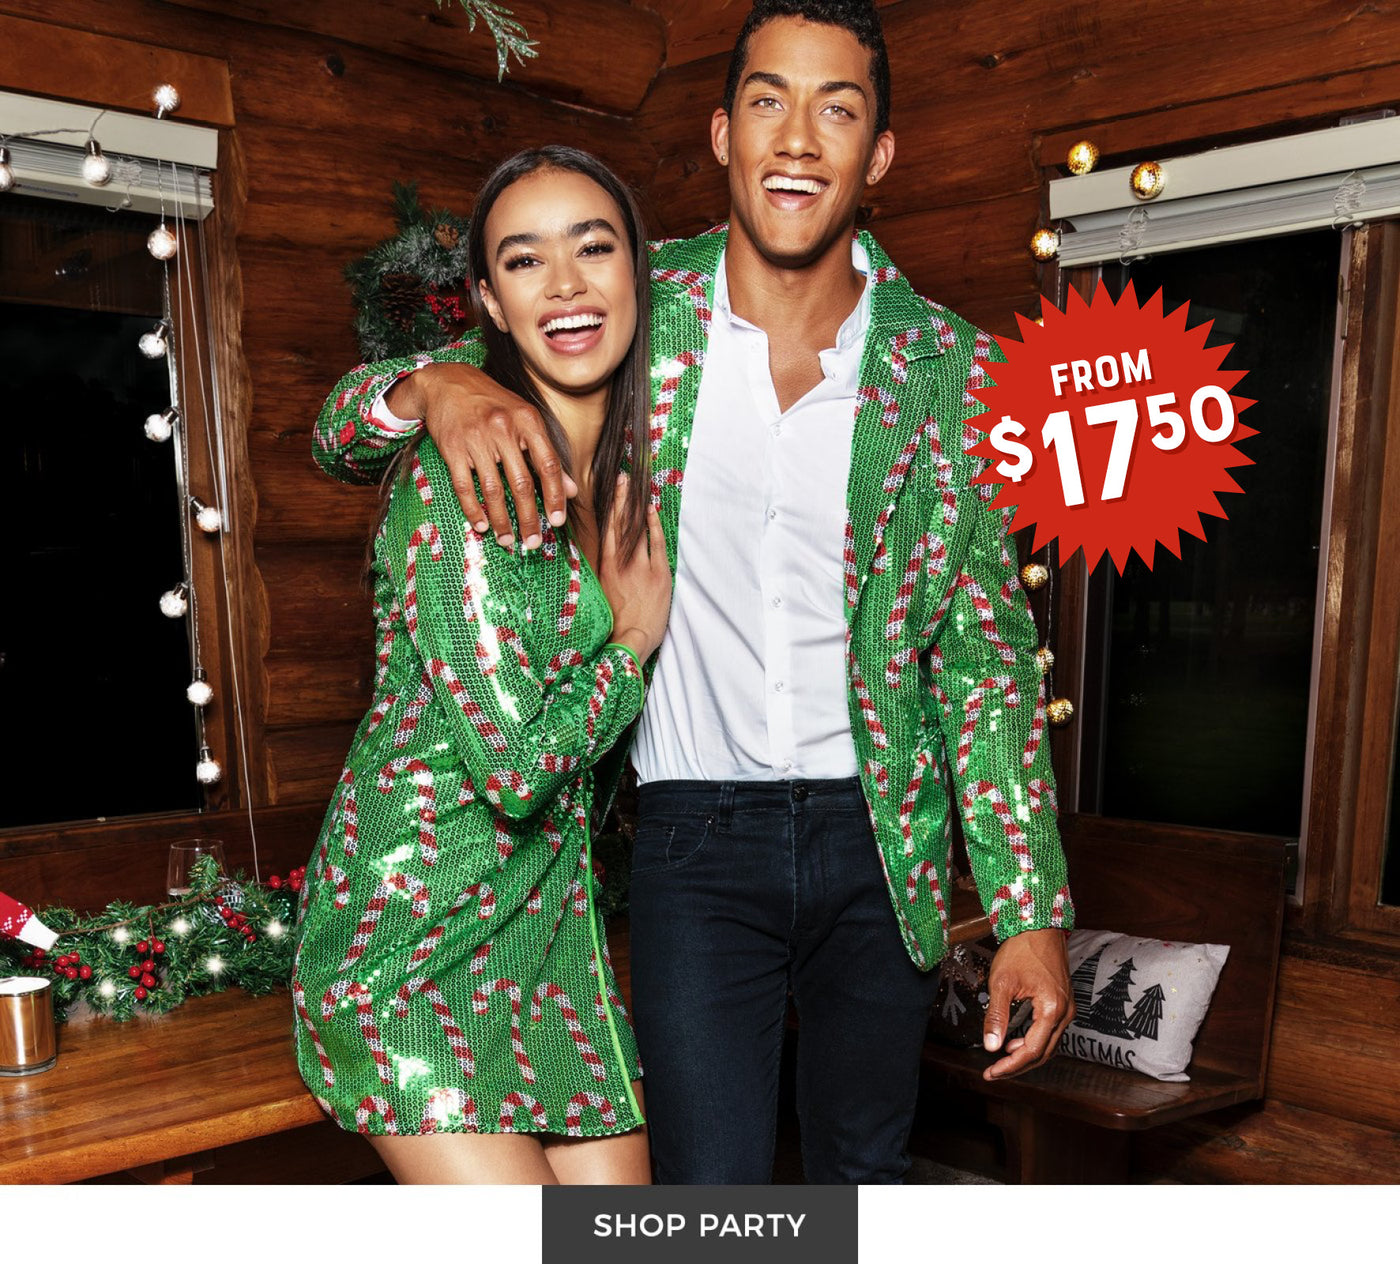 Urban Planet | Holiday Shop - Shop Party from $17.50